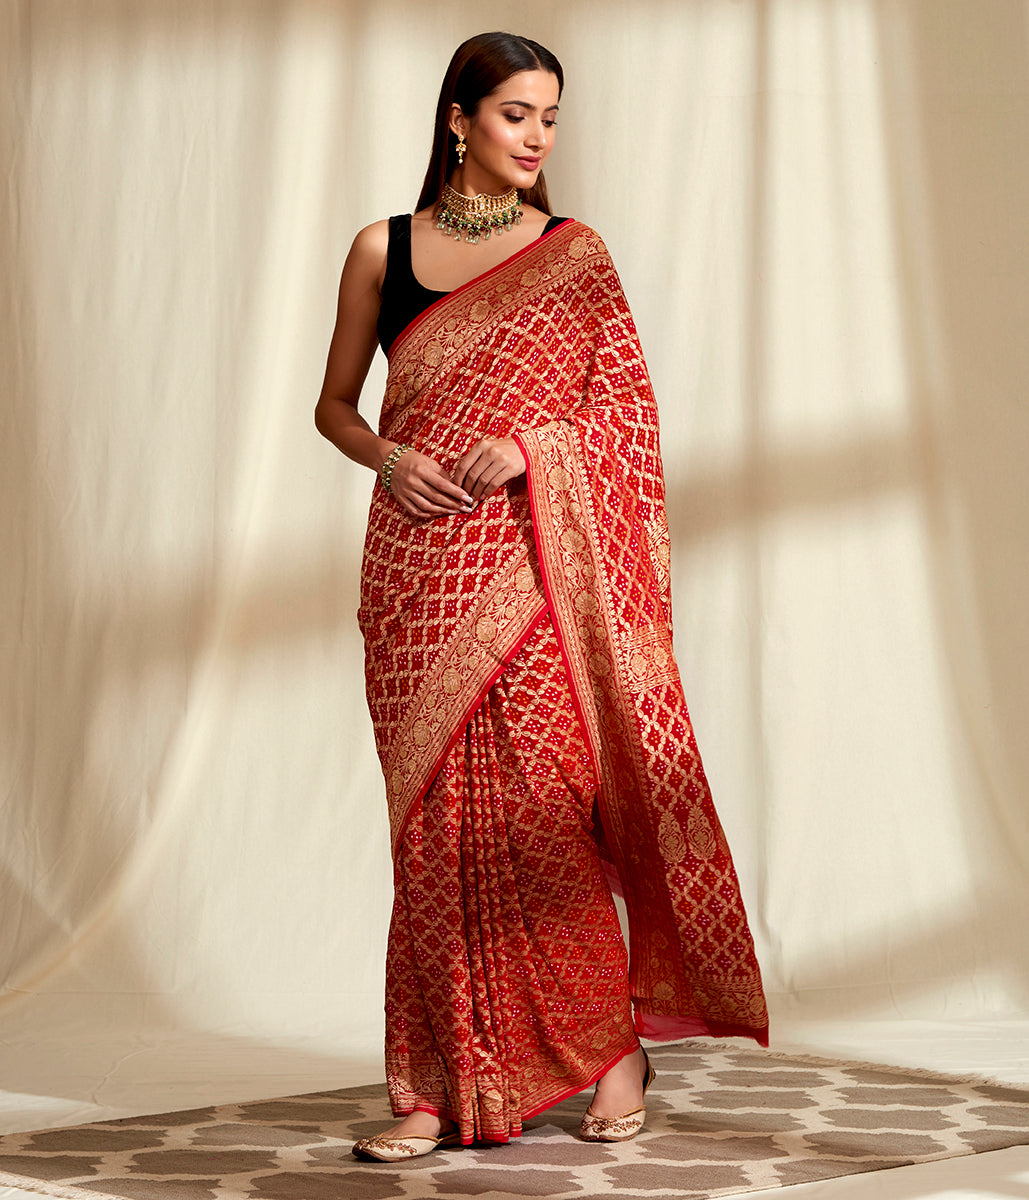 Handwoven Banarasi Bandhej Saree in Red with Gold Zari Weave